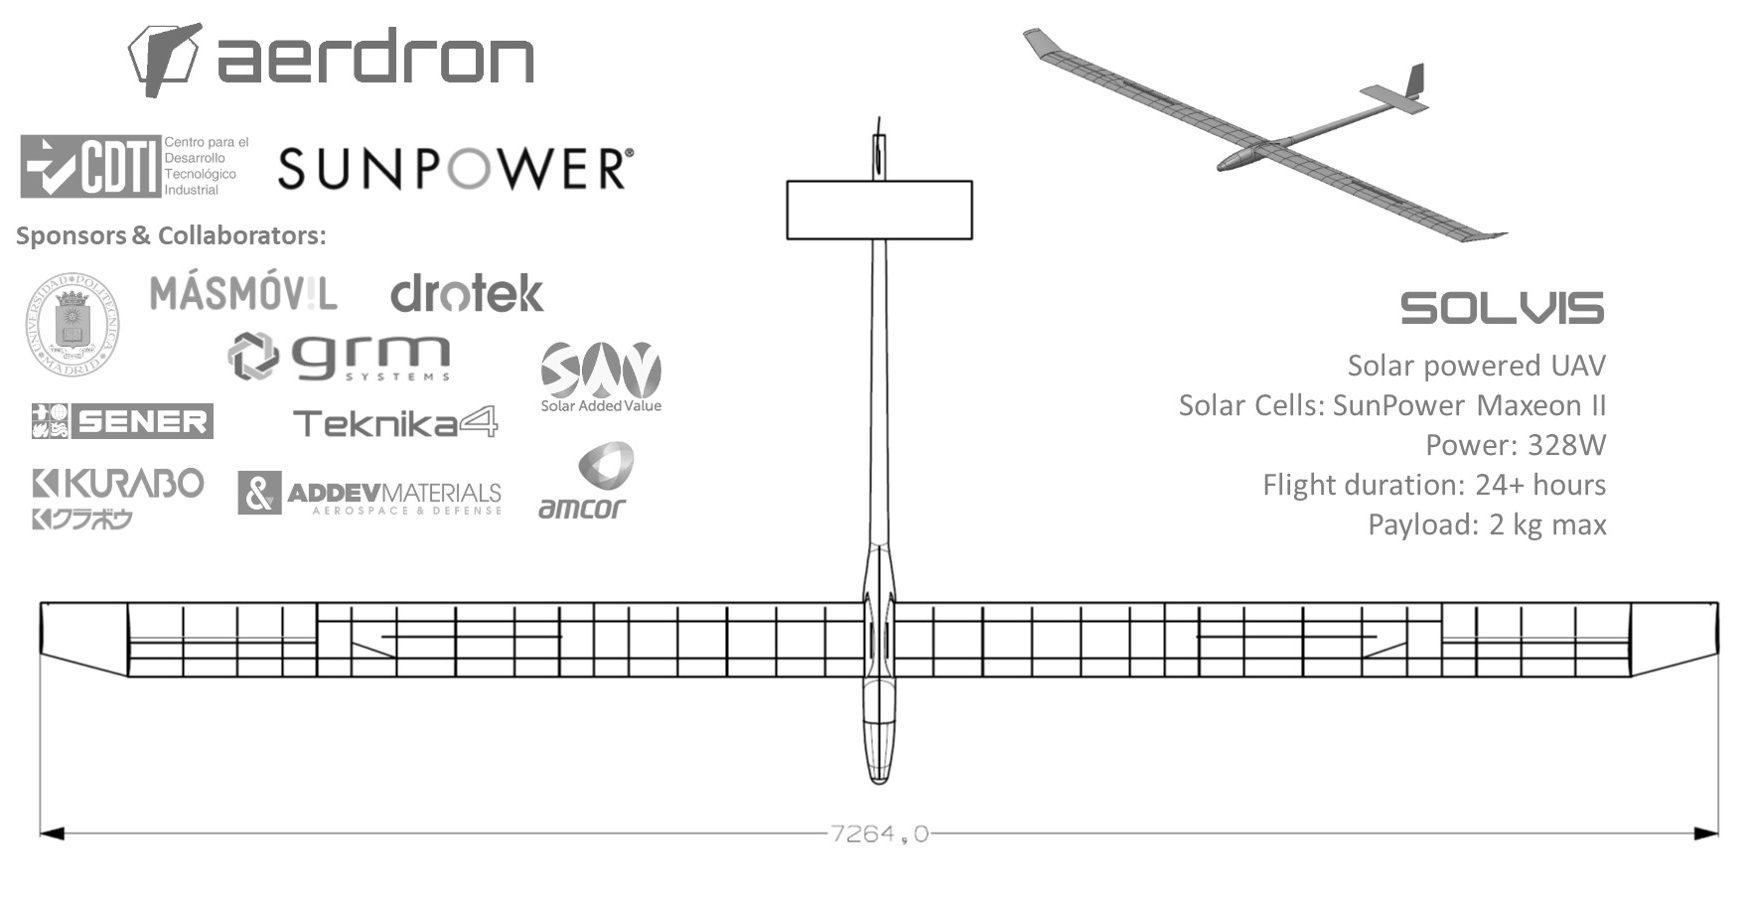 SOLVIS Solar Powered UAV – AERDRON